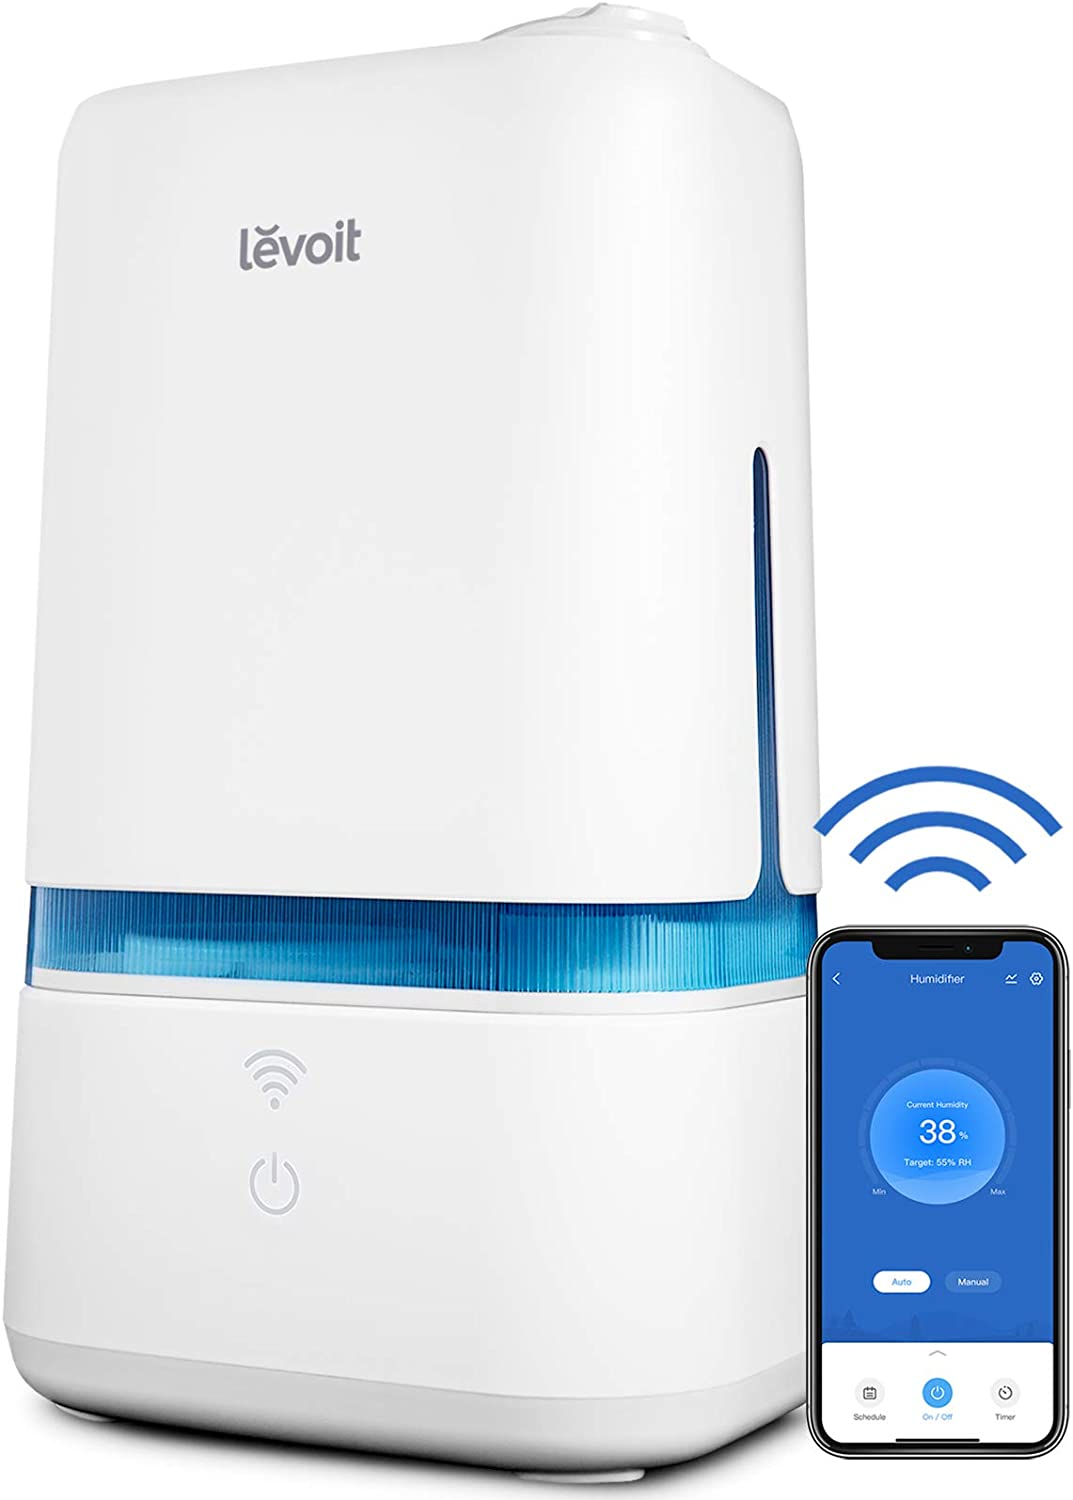 LEVOIT Humidifiers for Bedroom,Smart Wi-Fi Cool Mist Essential Oils Diffuser in one,4L Ultrasonic Air Vaporizer for Plants,Baby,Quiet for Home Large Room,Nursery,40 Hours,Classic 200S, Blue